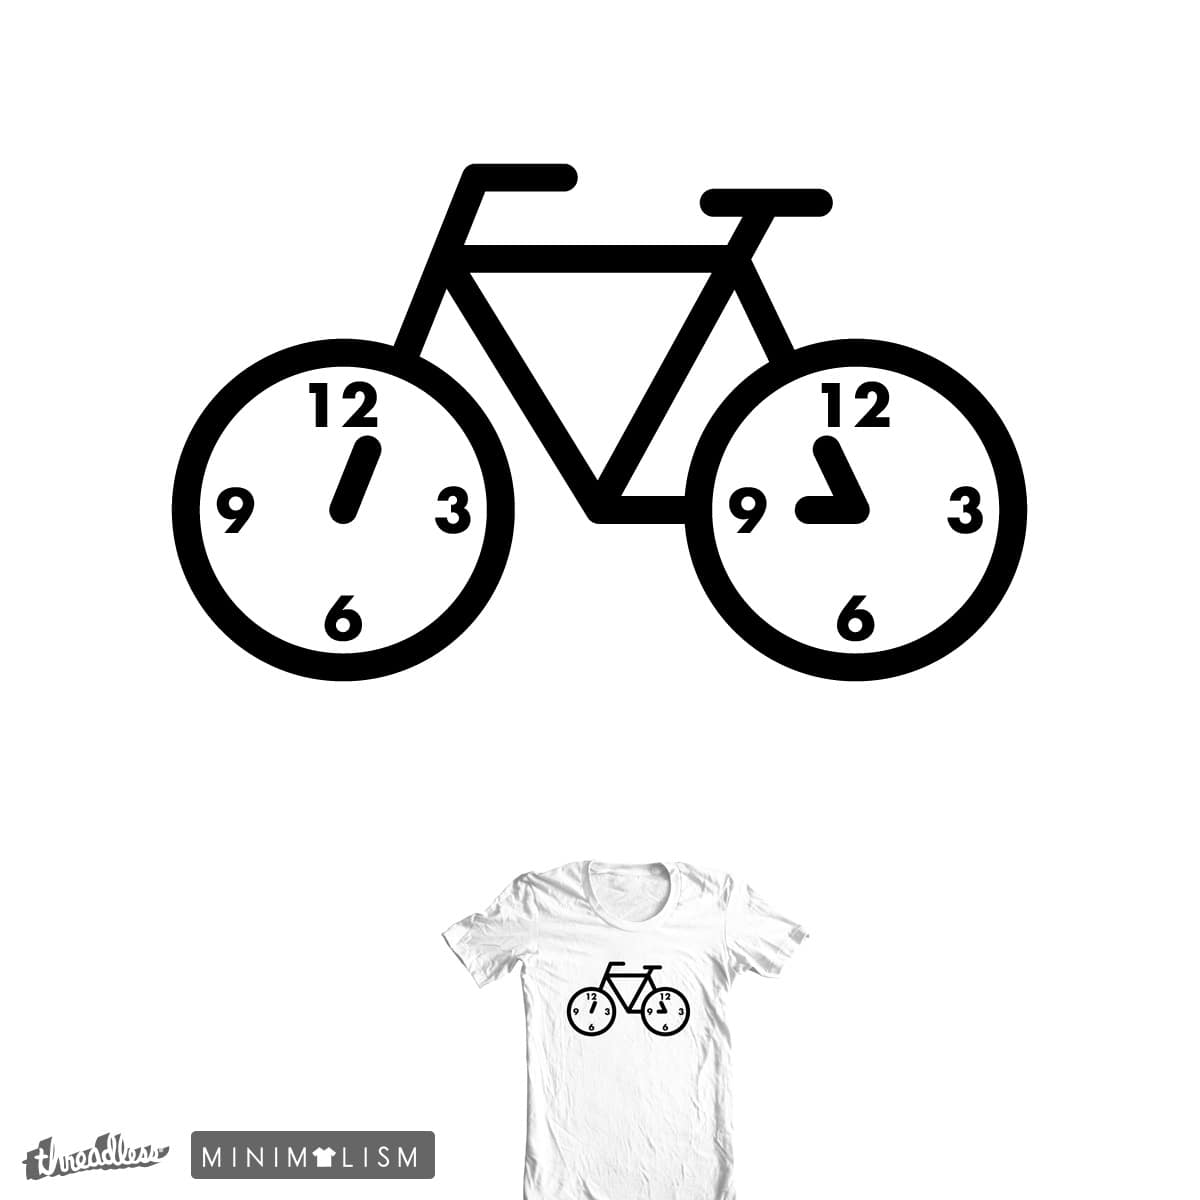 Cycle by Haasbroek on Threadless